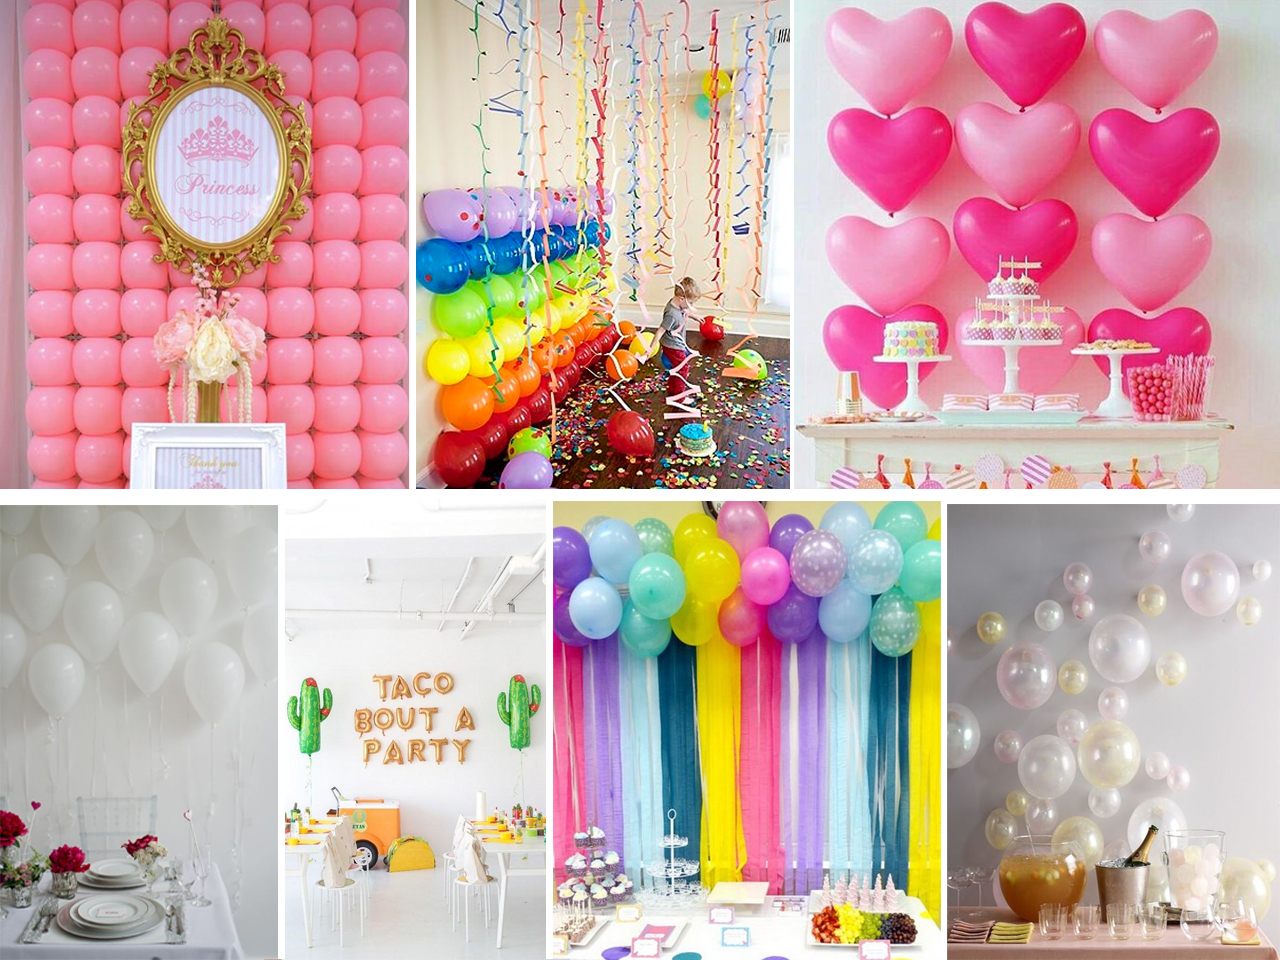 Descubre c mo decorar con globos con estas fant sticas ideas for Decorar pared grande salon